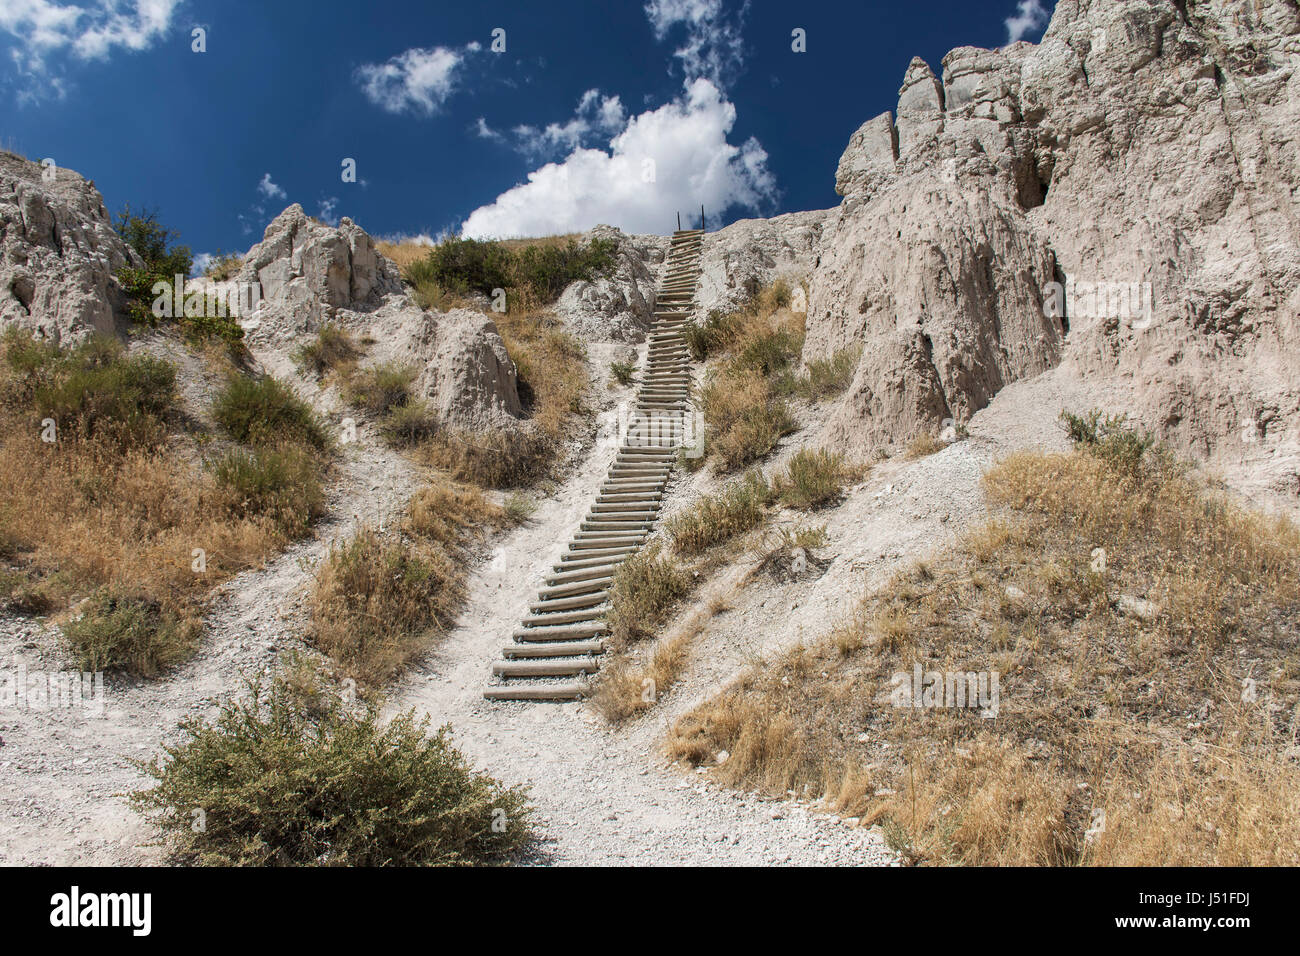 The Notch Trail showing a ladder in Badlands National Park, South Dakota, USA. - Stock Image